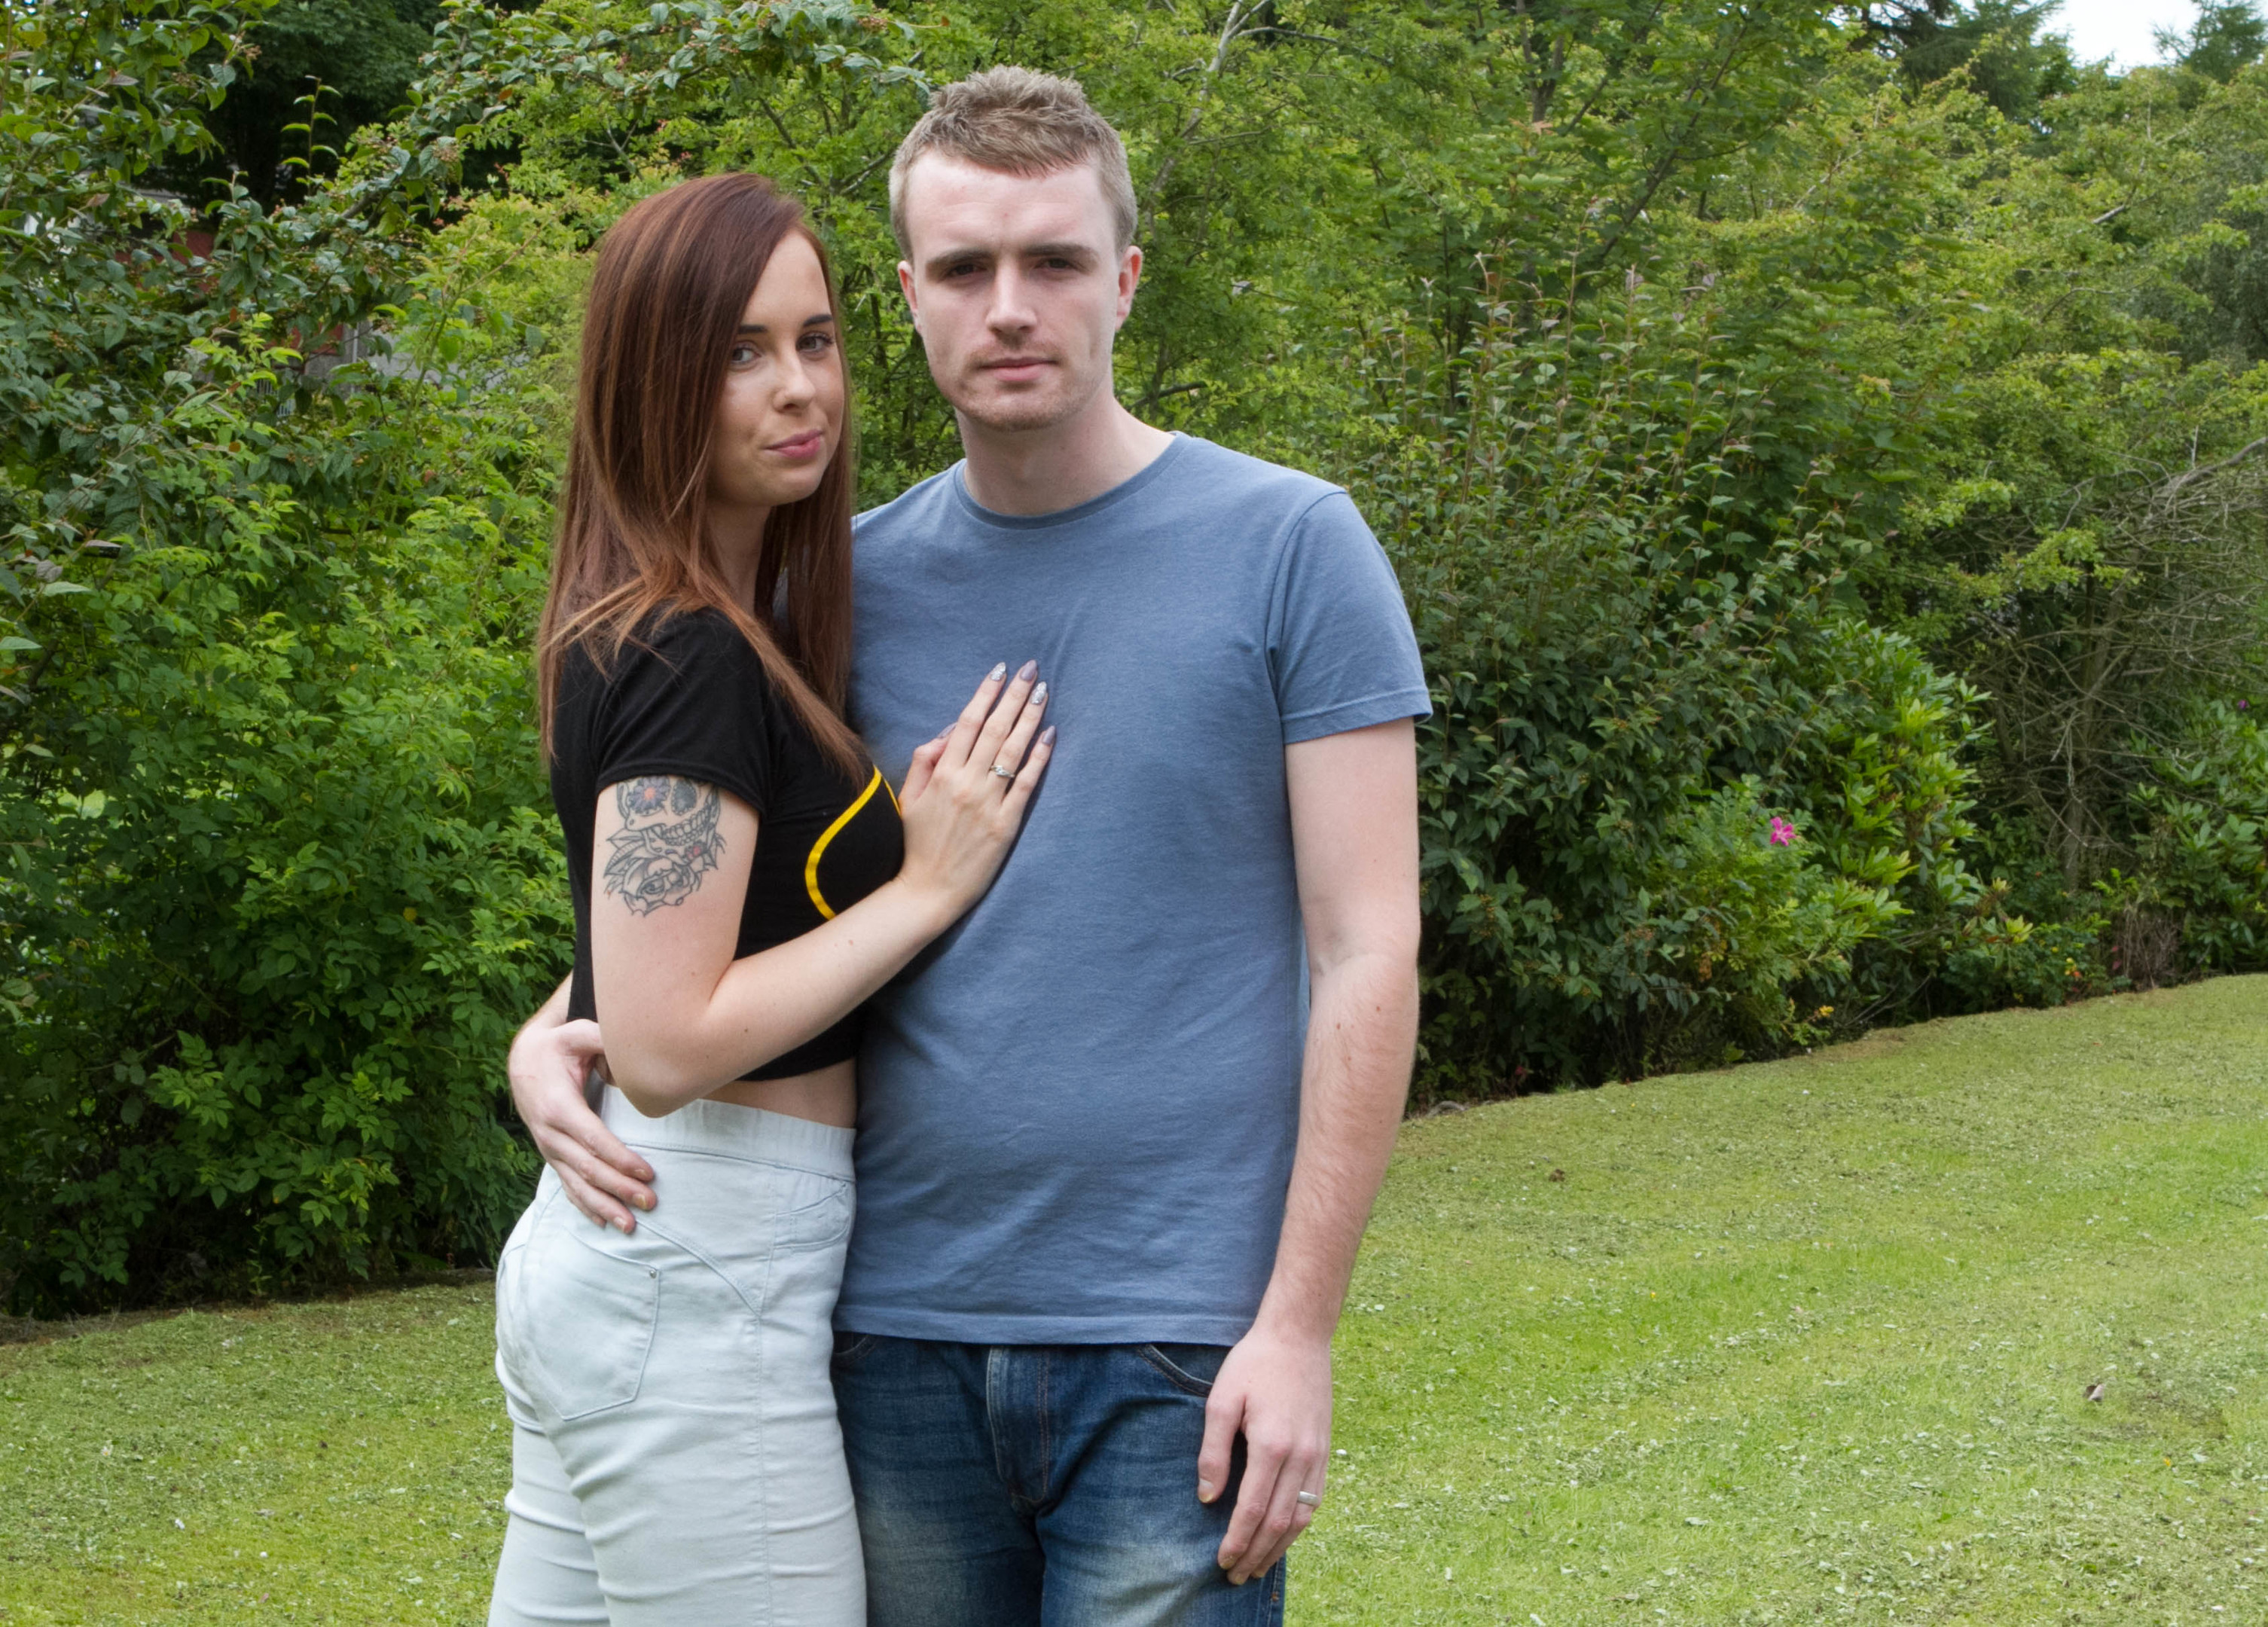 Robbie Stirling was attacked outside Kittys nightclub 4 years ago - pictured with fiancee Krystal (C Austin/ DcThomson)